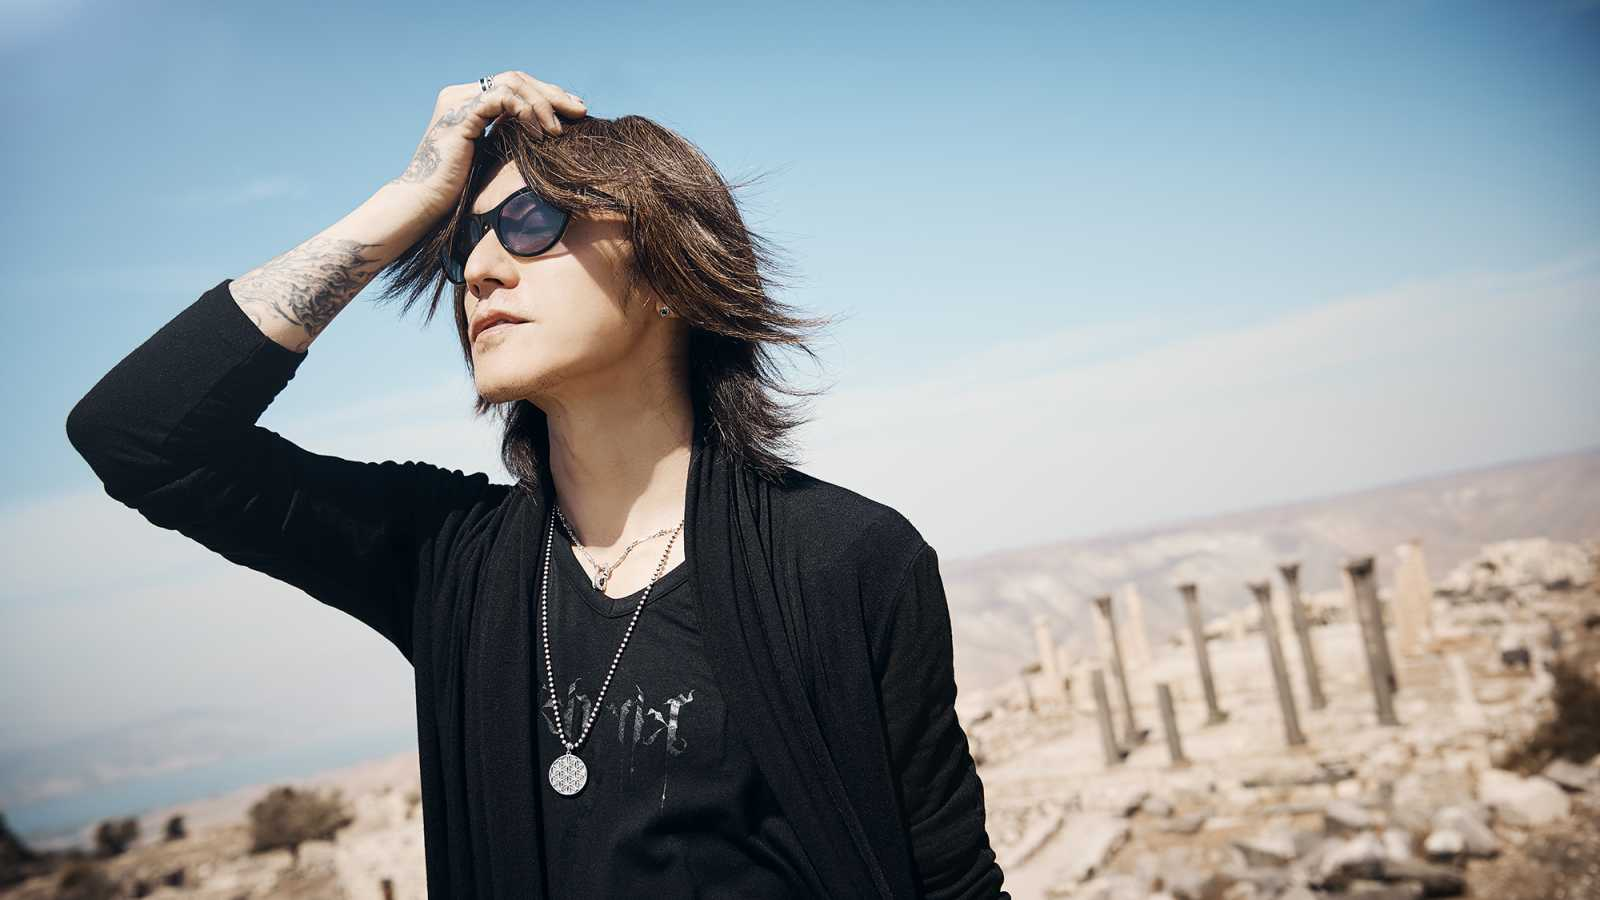 Details on SUGIZO's First Live Streaming Concert © SUGIZO. All rights reserved.